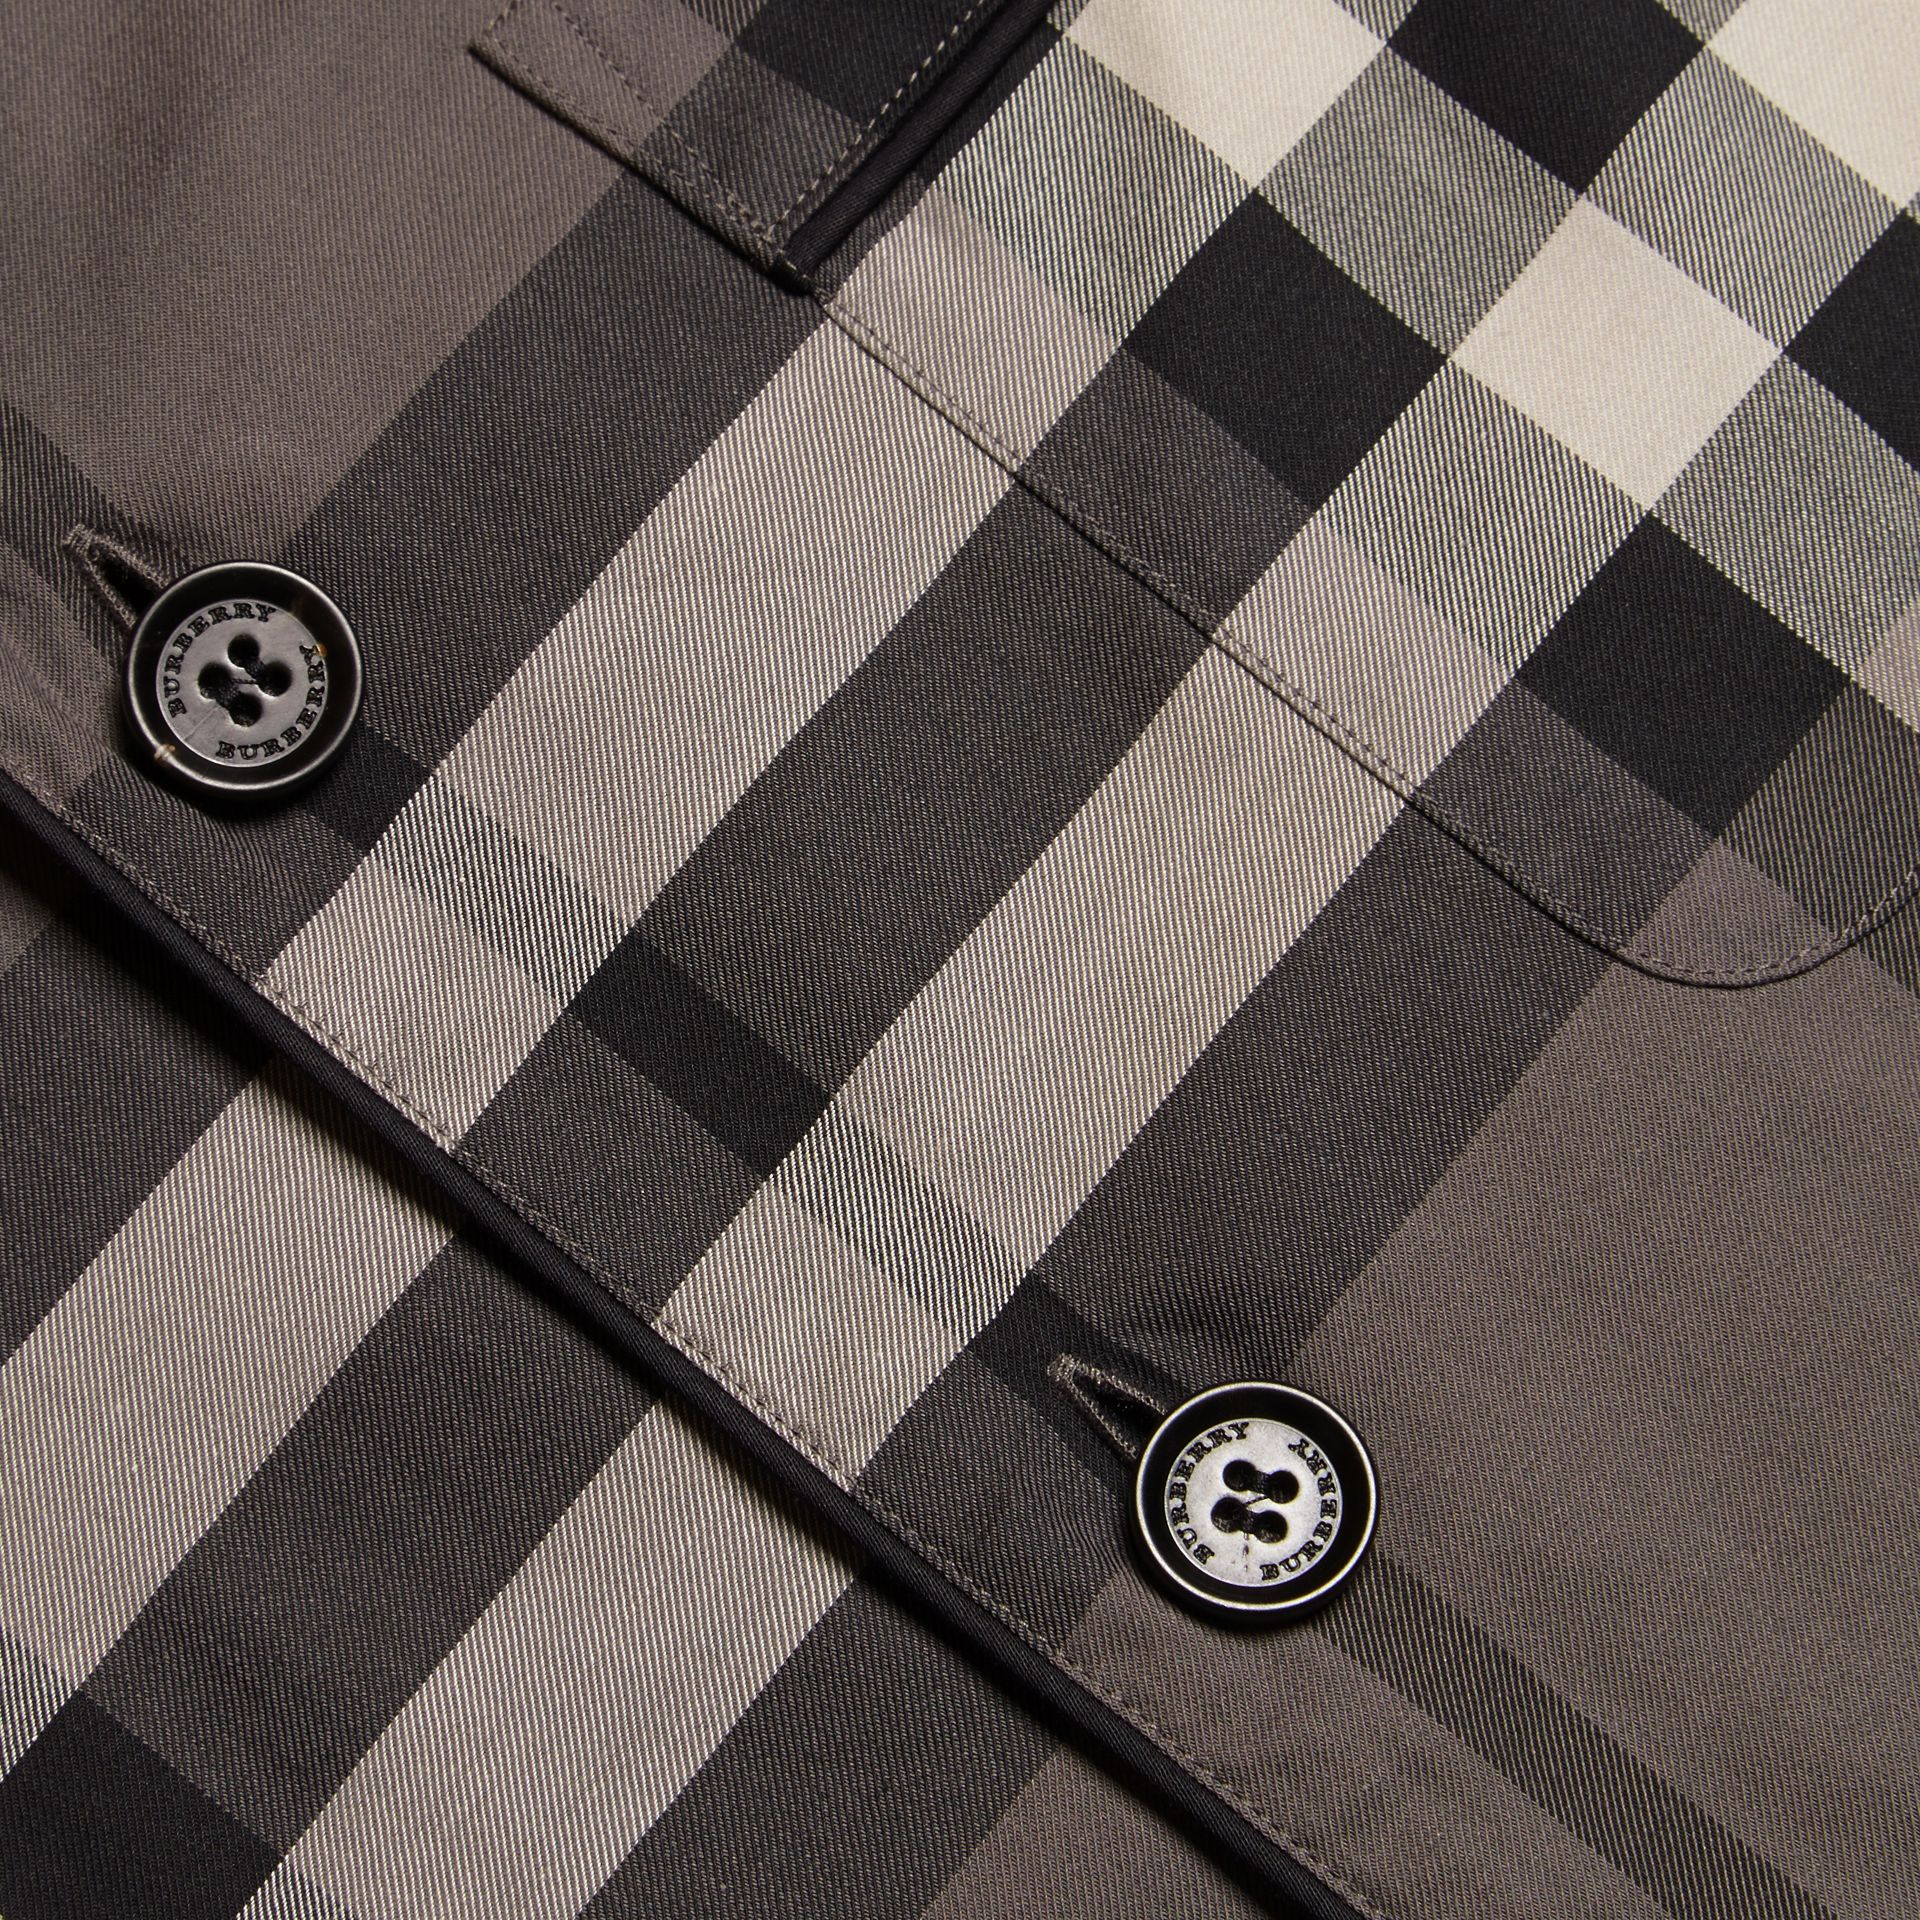 Charcoal Short-sleeved Check Cotton Pyjama-style Shirt Charcoal - gallery image 2